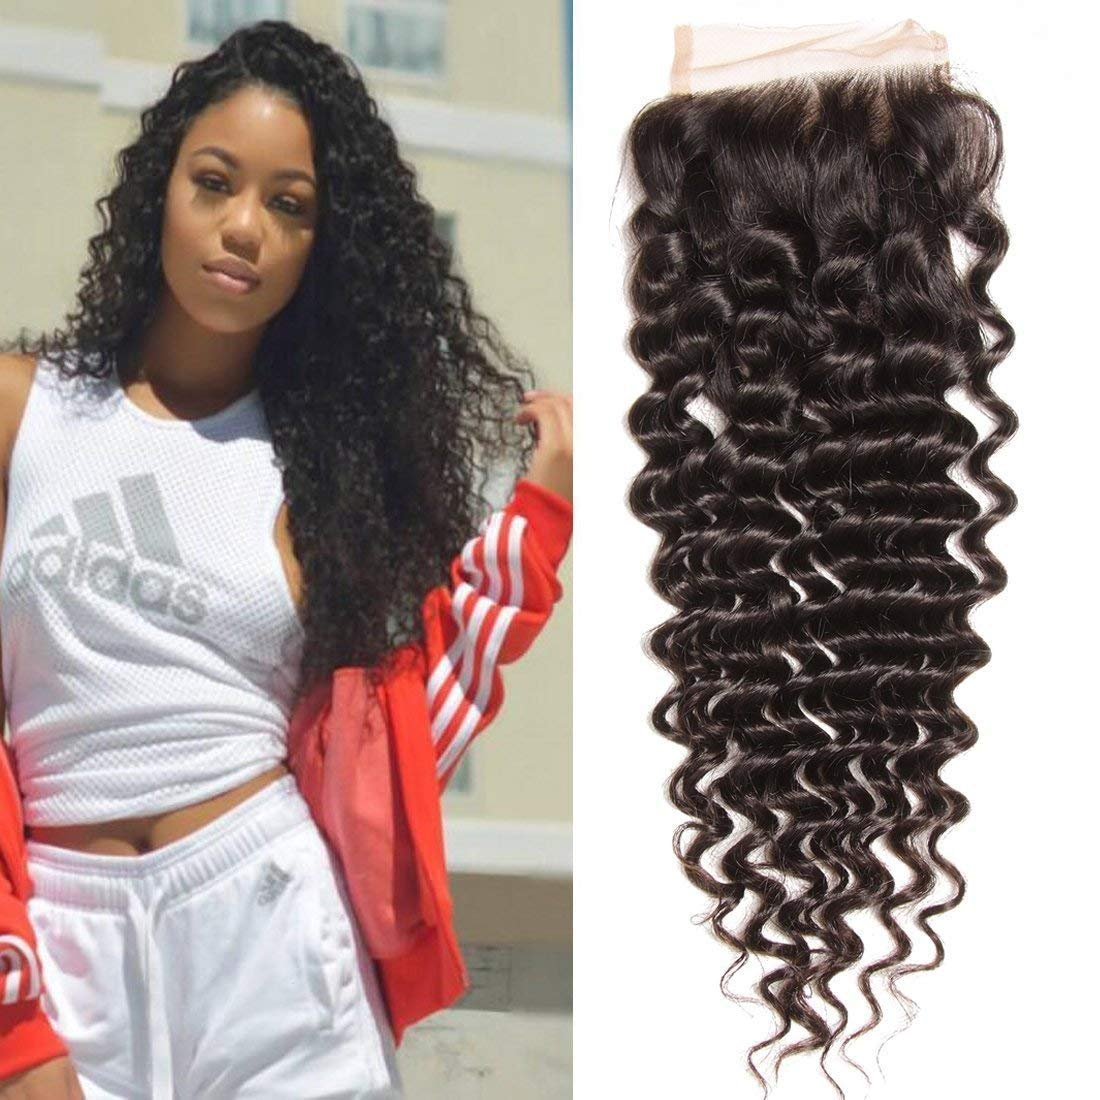 LETMESHINE JERRY CURLY 4*4 OR 5*5 LACE CLOSURE THREE PART MIDDLE PART FREE PART 100% VIRGIN HUMAN HAIR NATURAL COLOR